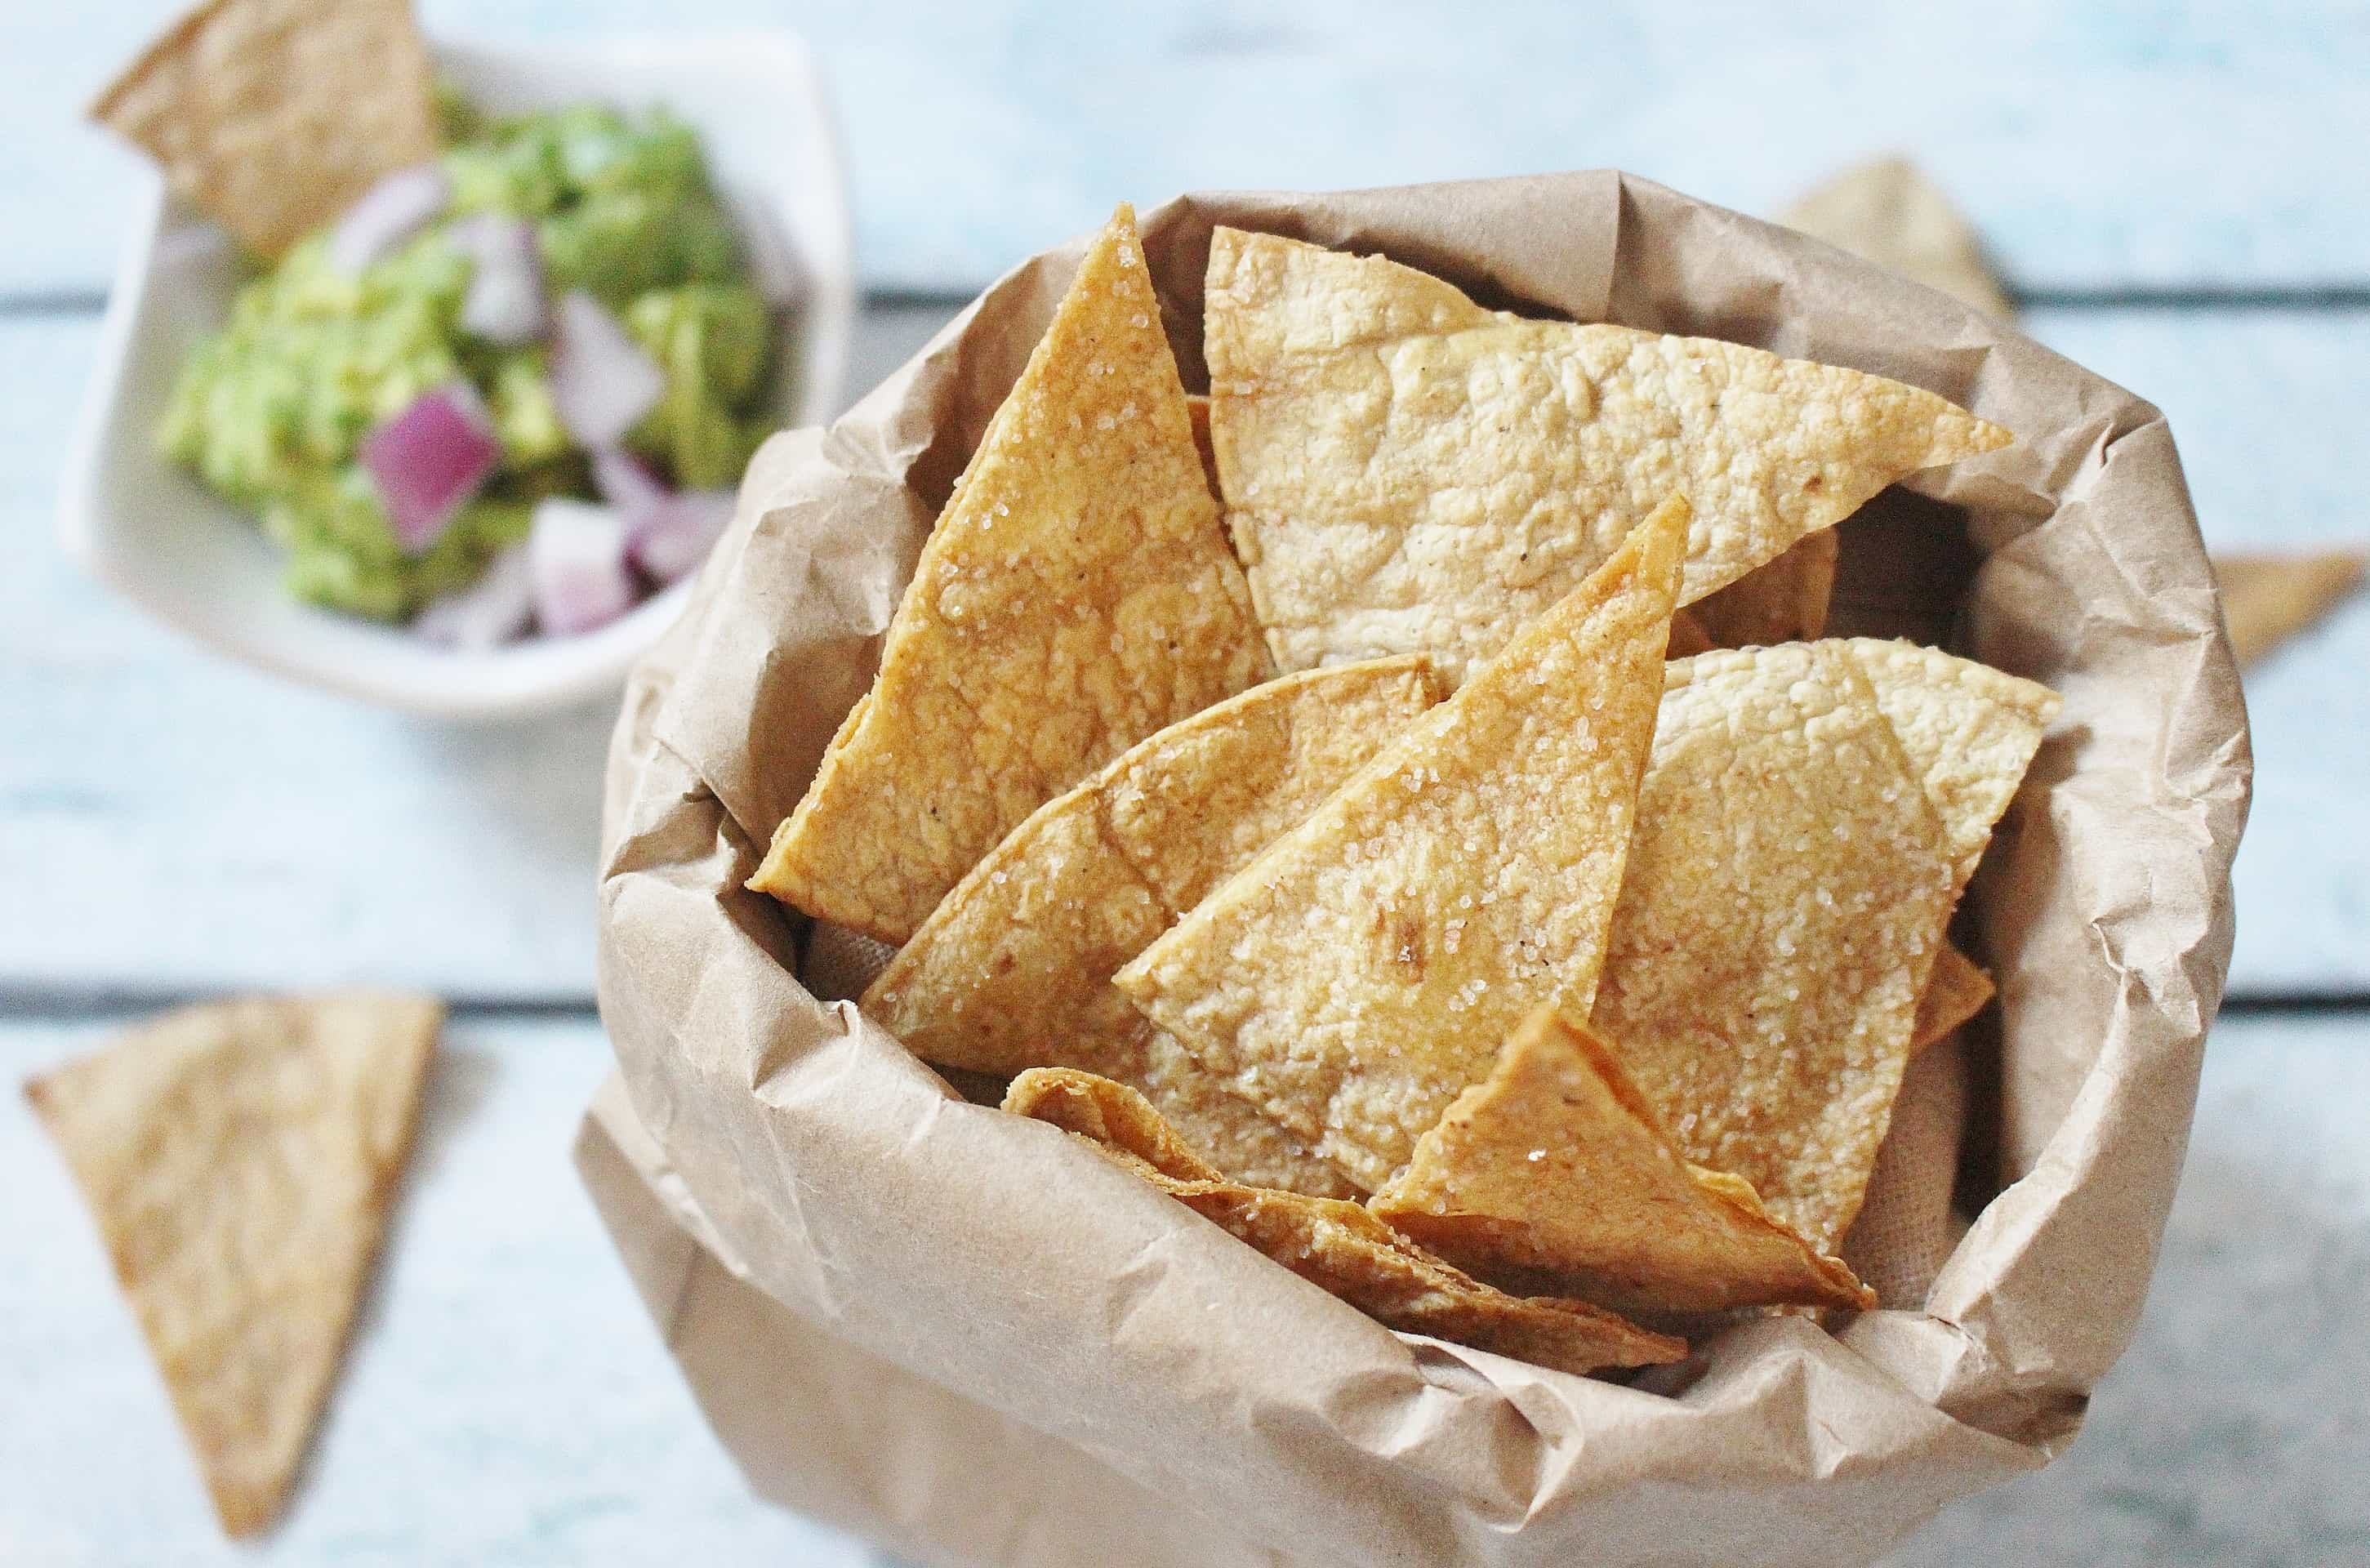 Oven Baked Tortilla Chips In 12 Minutes 07 Per Serving Watermelon Wallpaper Rainbow Find Free HD for Desktop [freshlhys.tk]